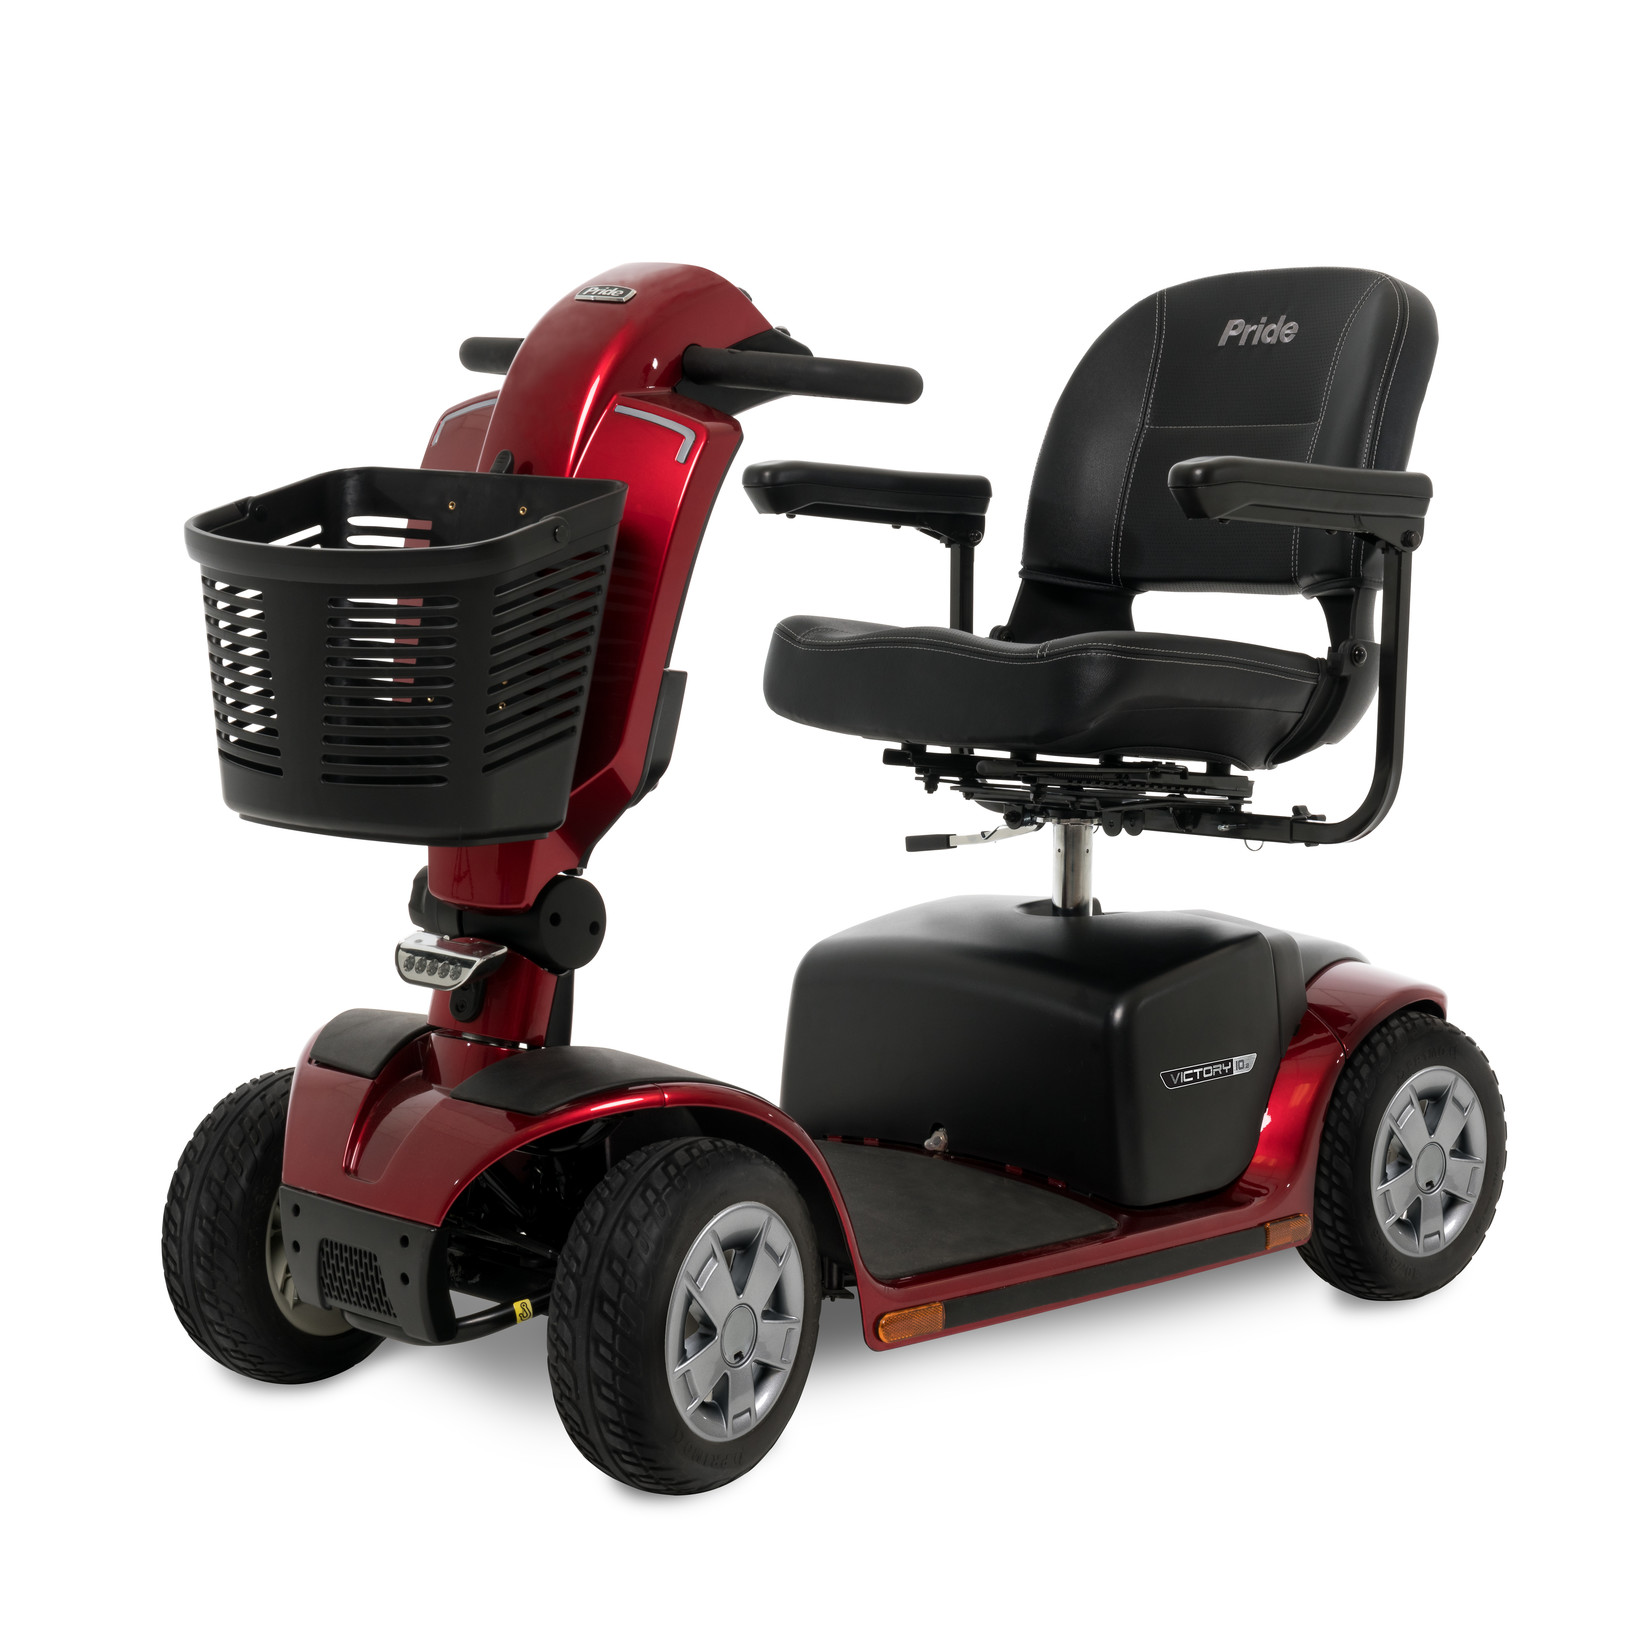 Pride Victory 10.2 4-Wheel Scooters